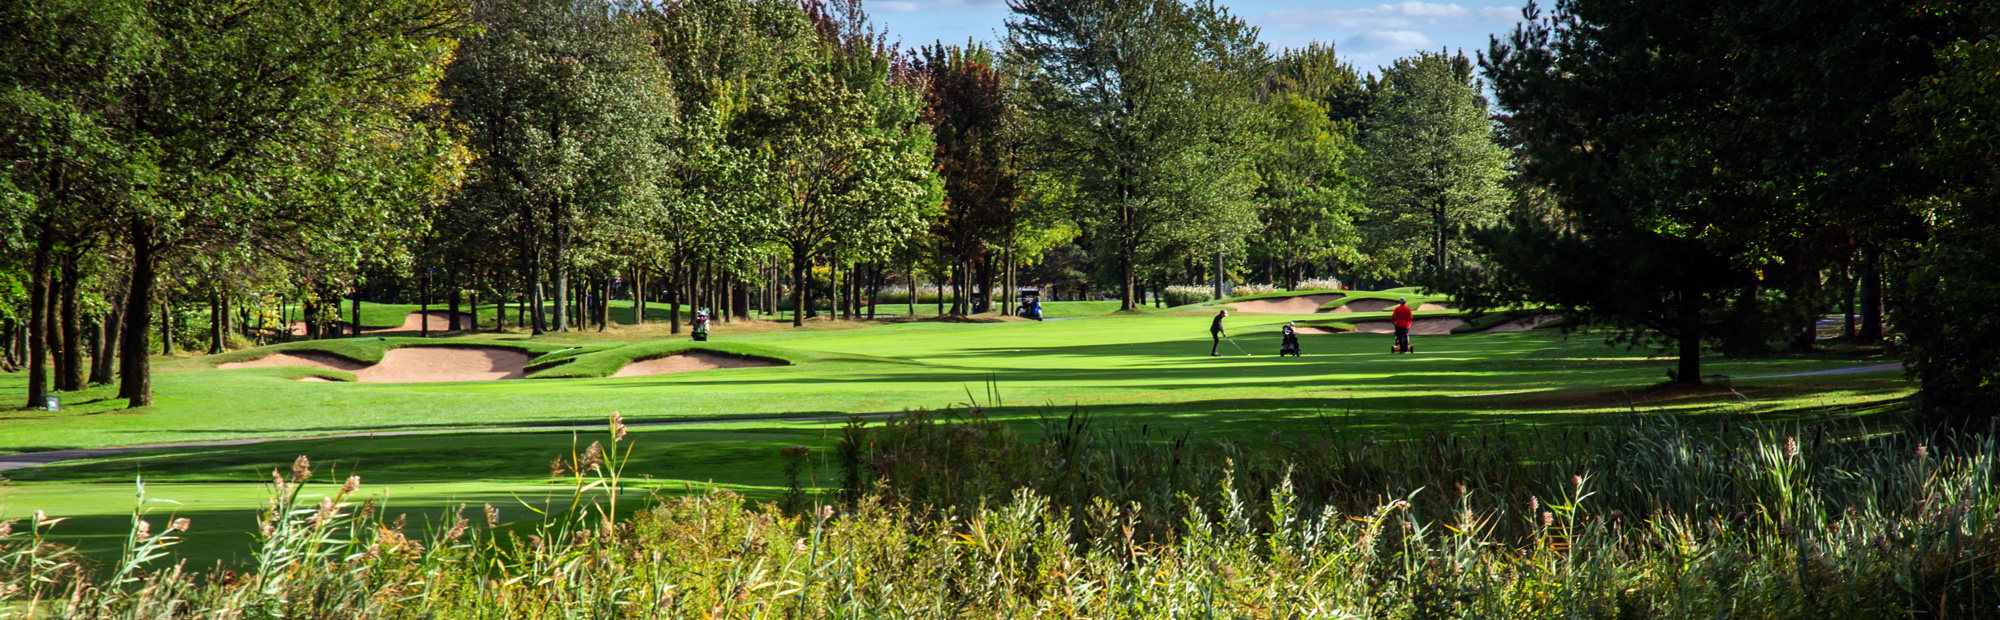 Club-de-golf-de-la-Valle-du-Richelieu6